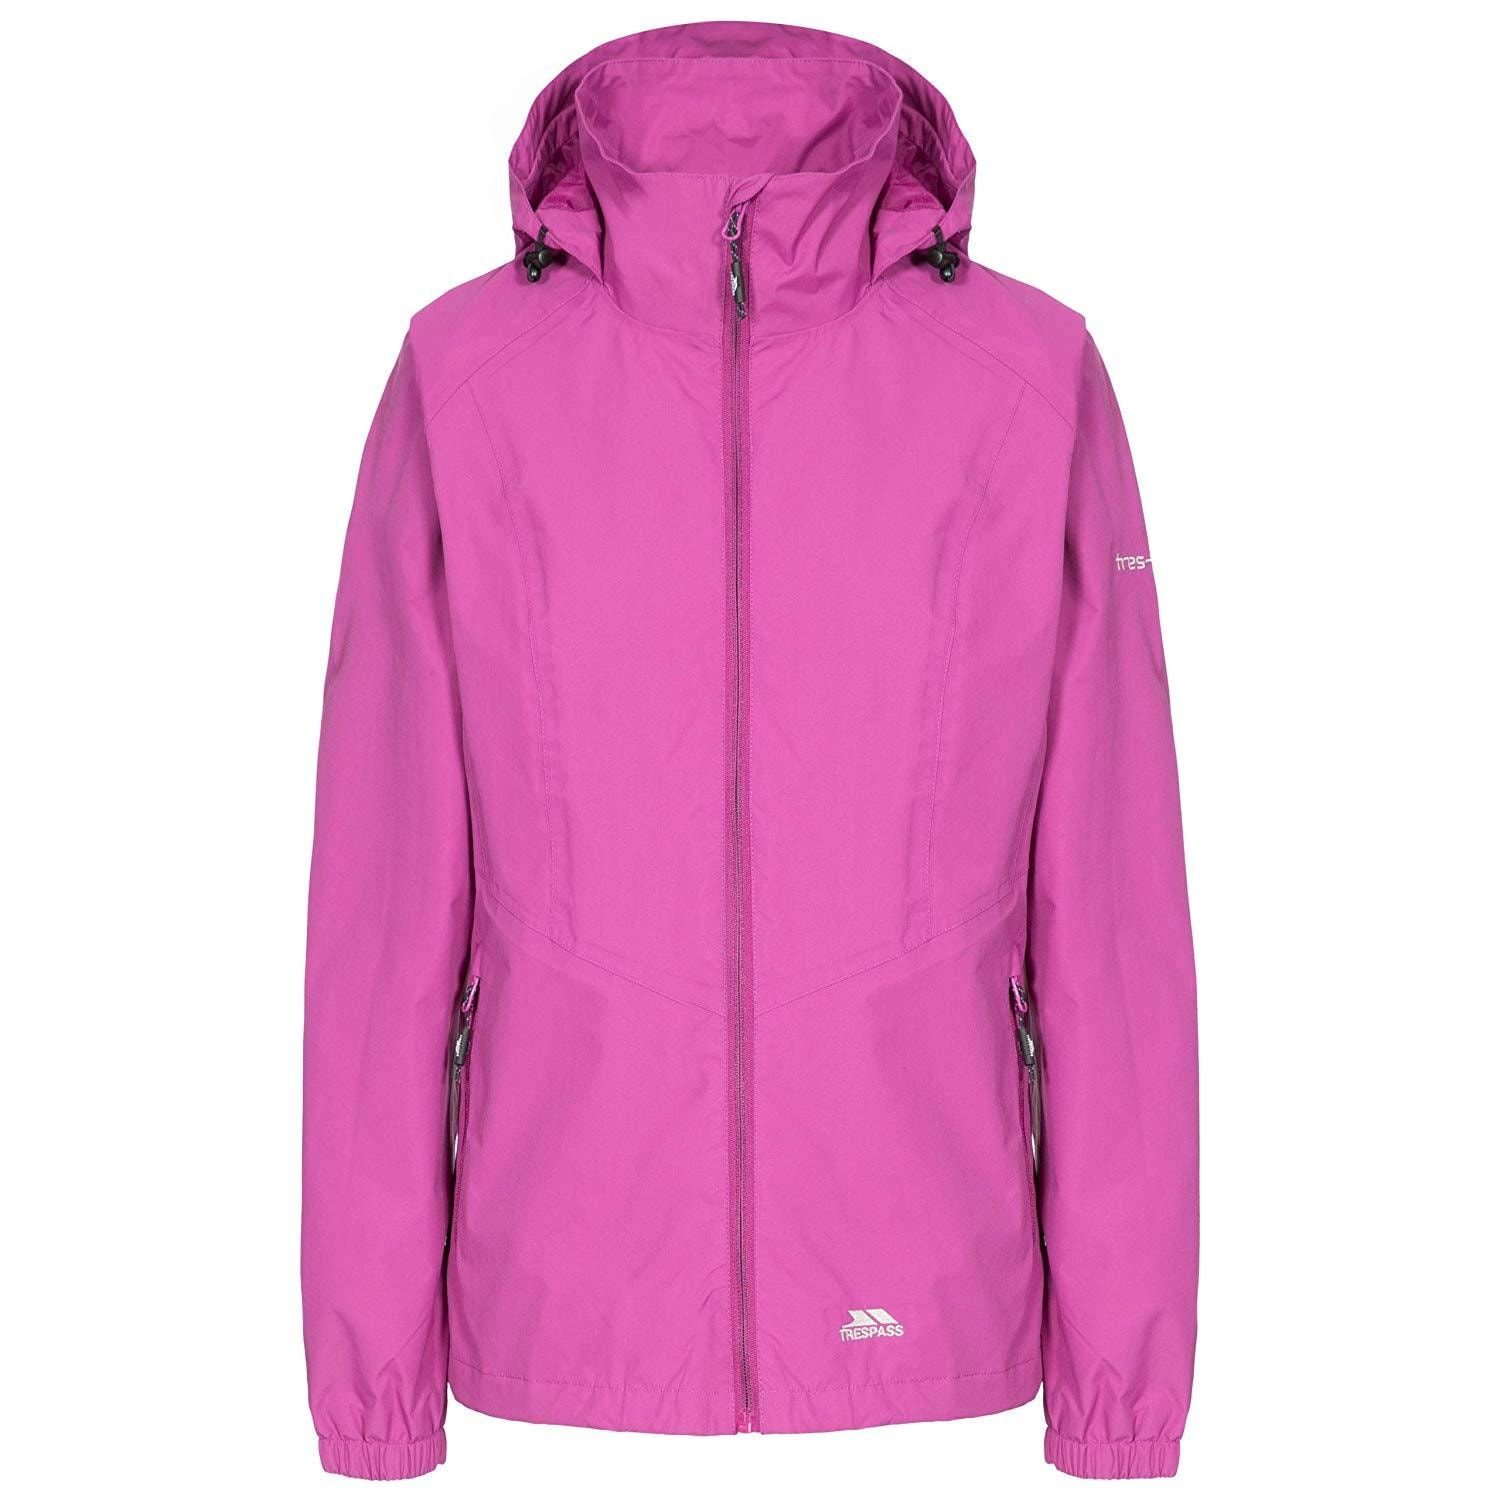 Trespass Outdoorjacke Damen Jacke Blyton wasserdicht